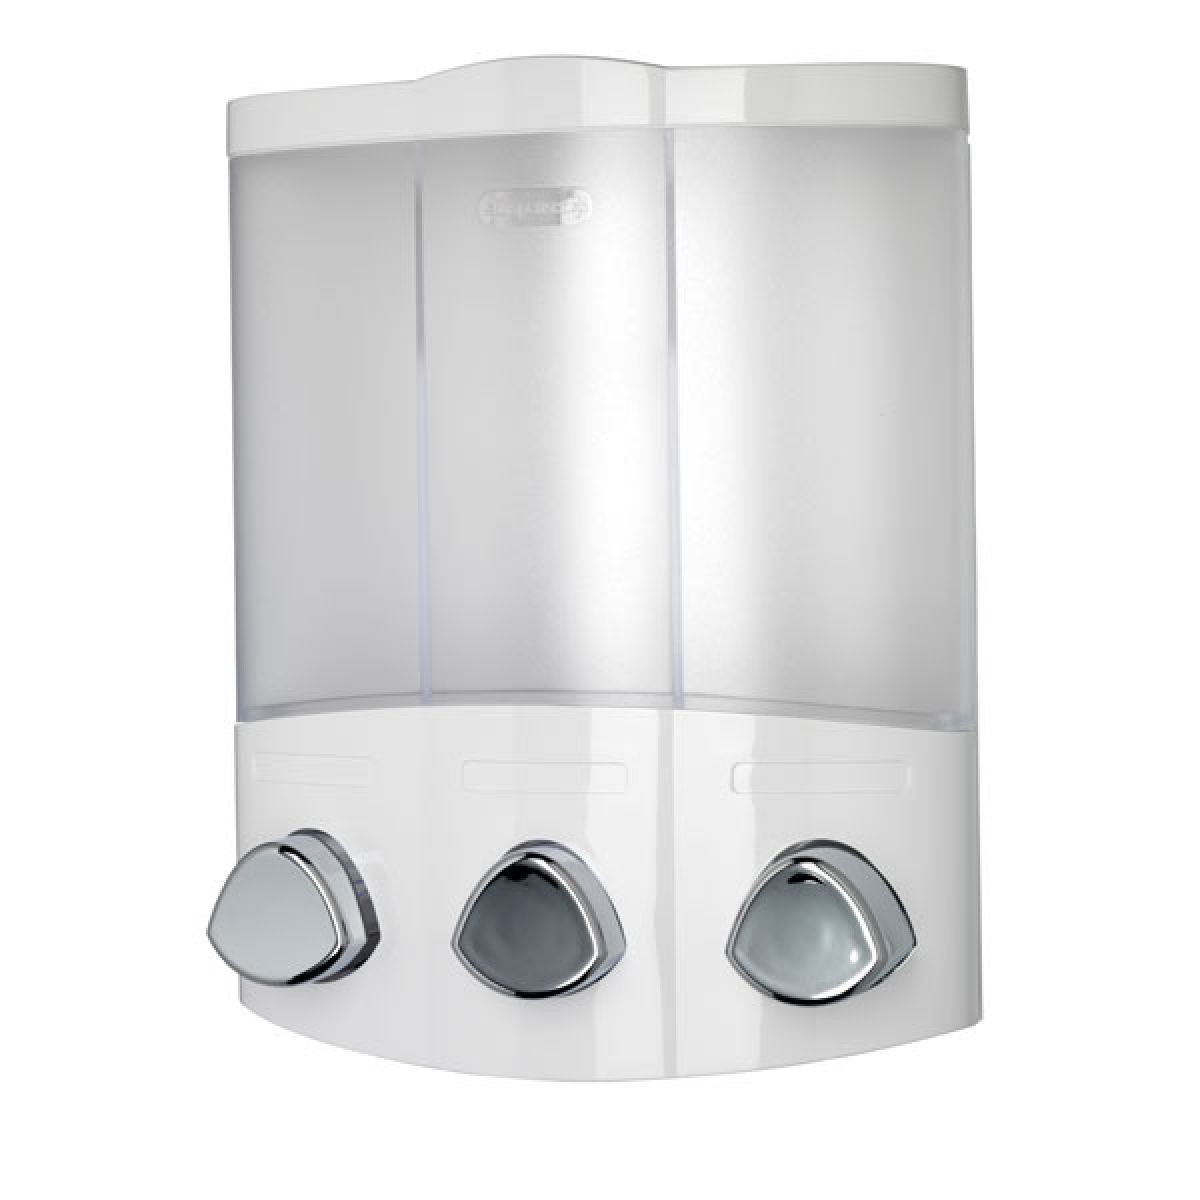 Croydex Euro Soap Dispenser Trio in White